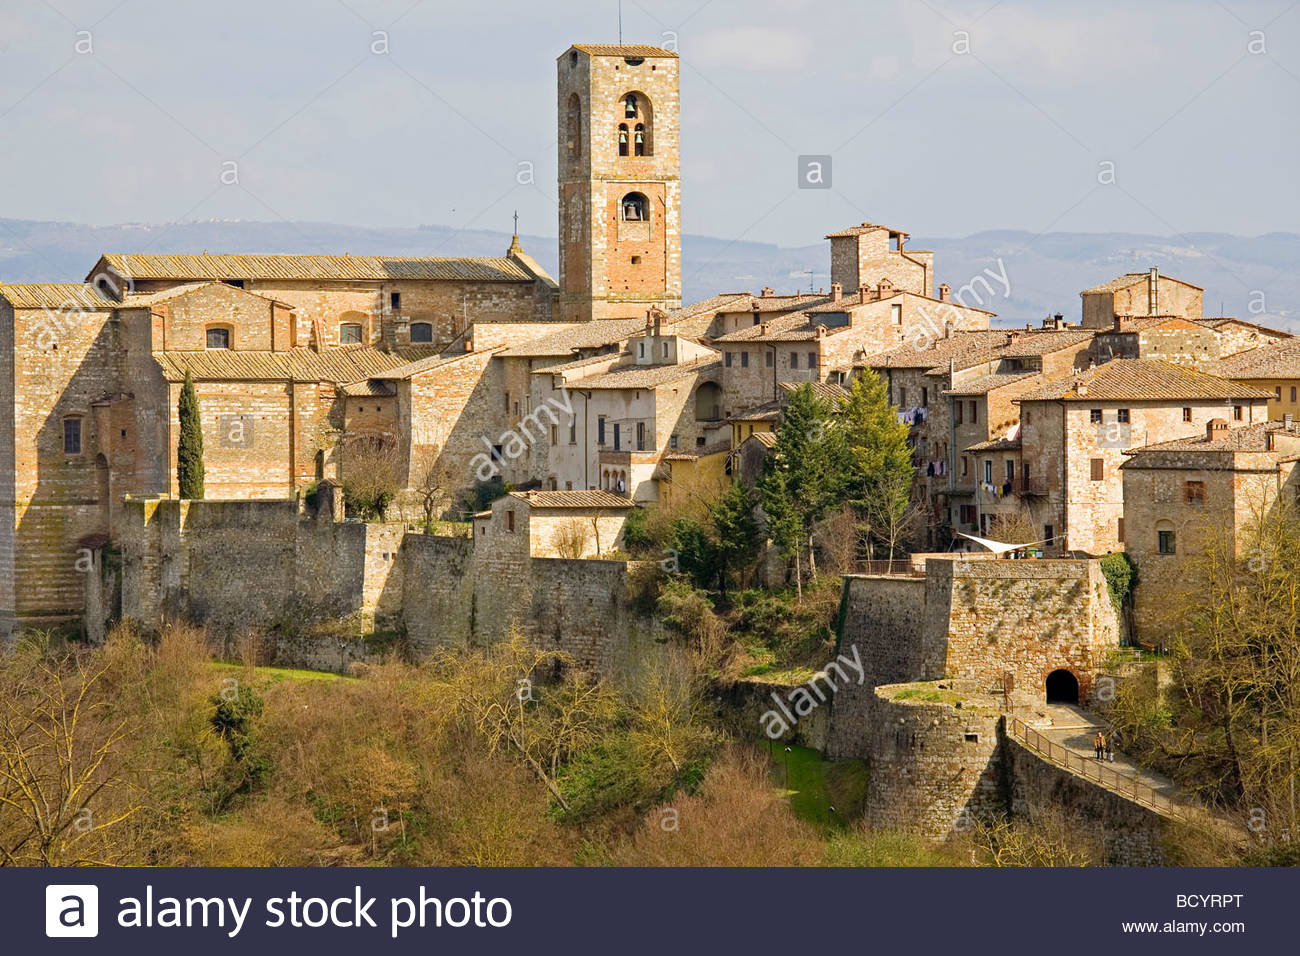 europe, italy, tuscany, colle val d'elsa - Stock Image